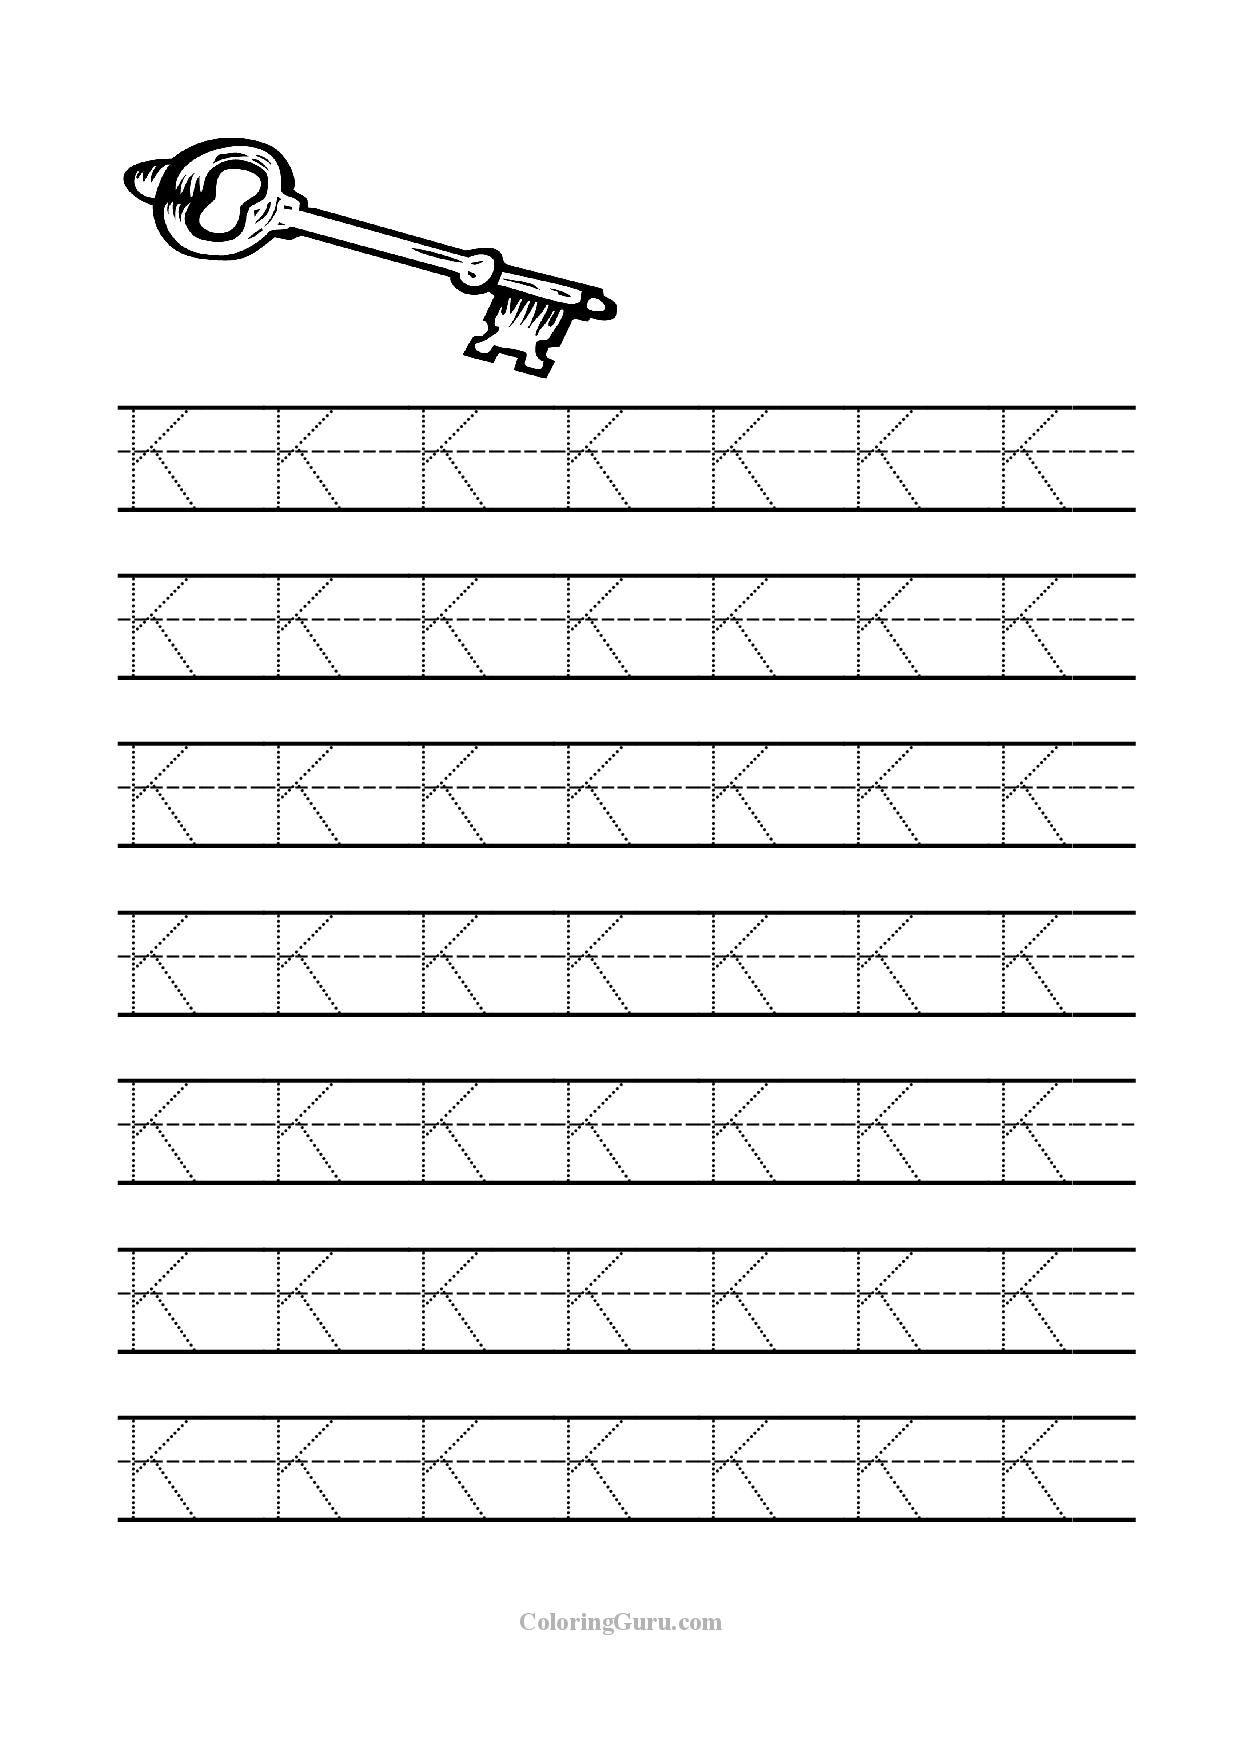 Free Printable Tracing Letter K Worksheets For Preschool | Manuscript Printable Worksheets